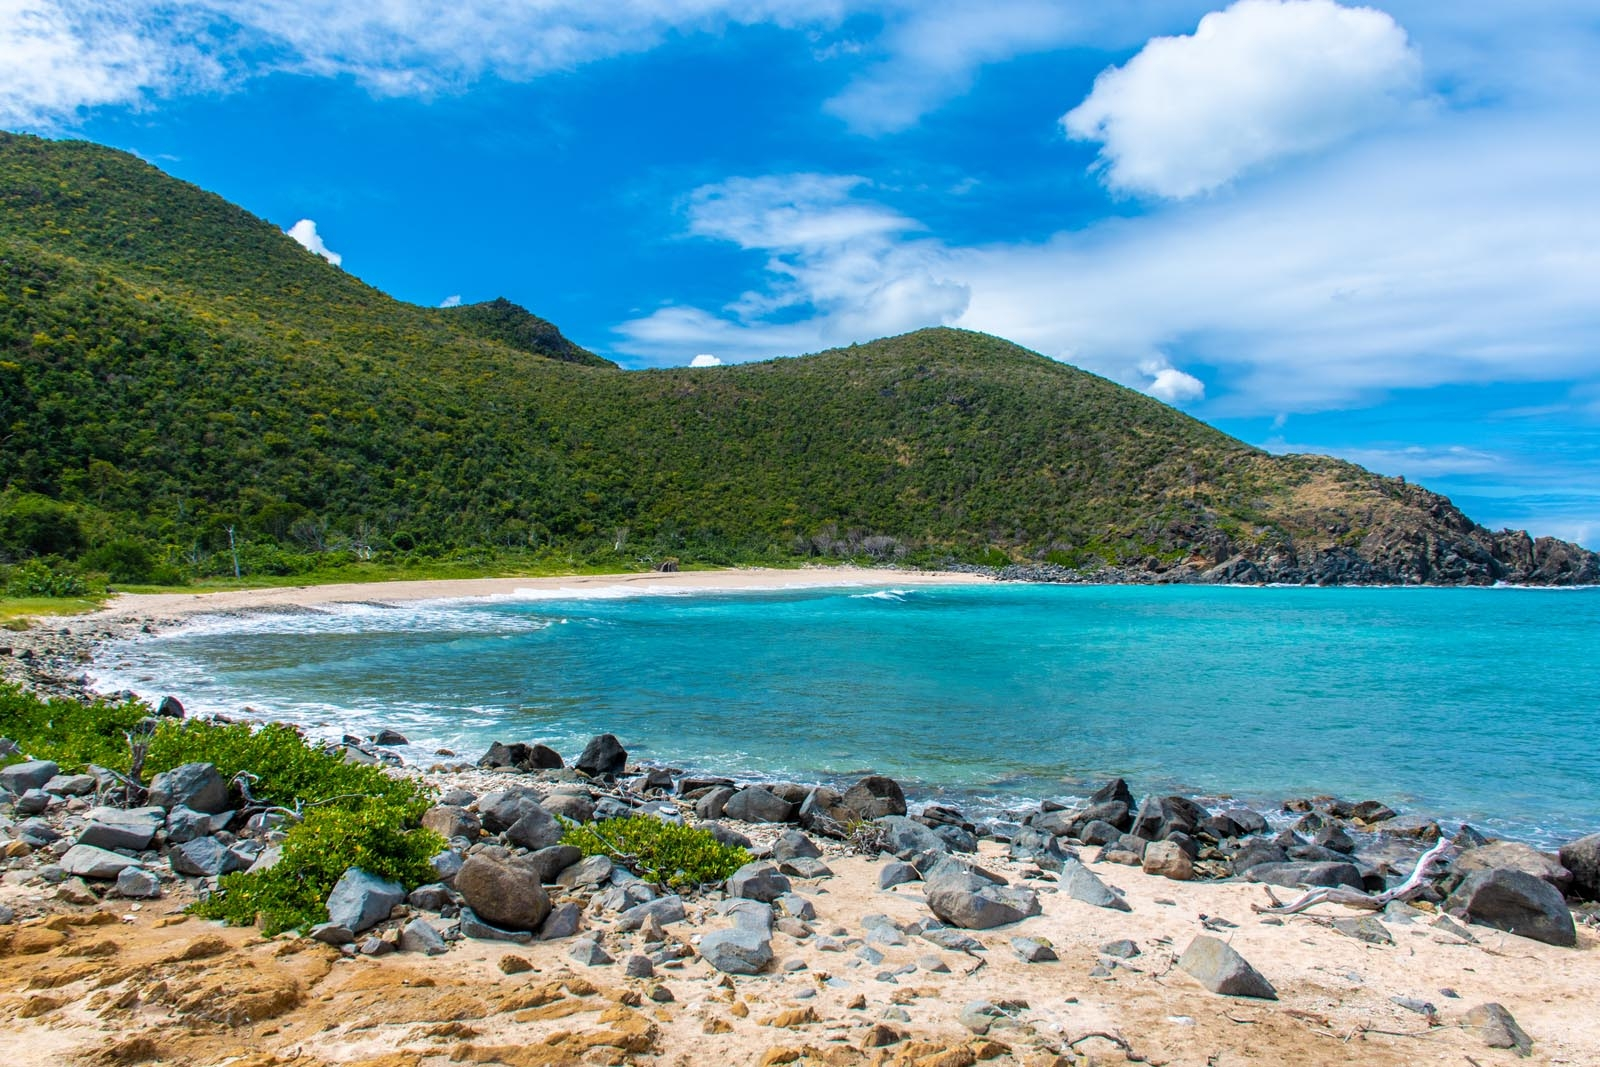 Nude Beach Videos st martin nude beaches: why orient bay beach isn't your only